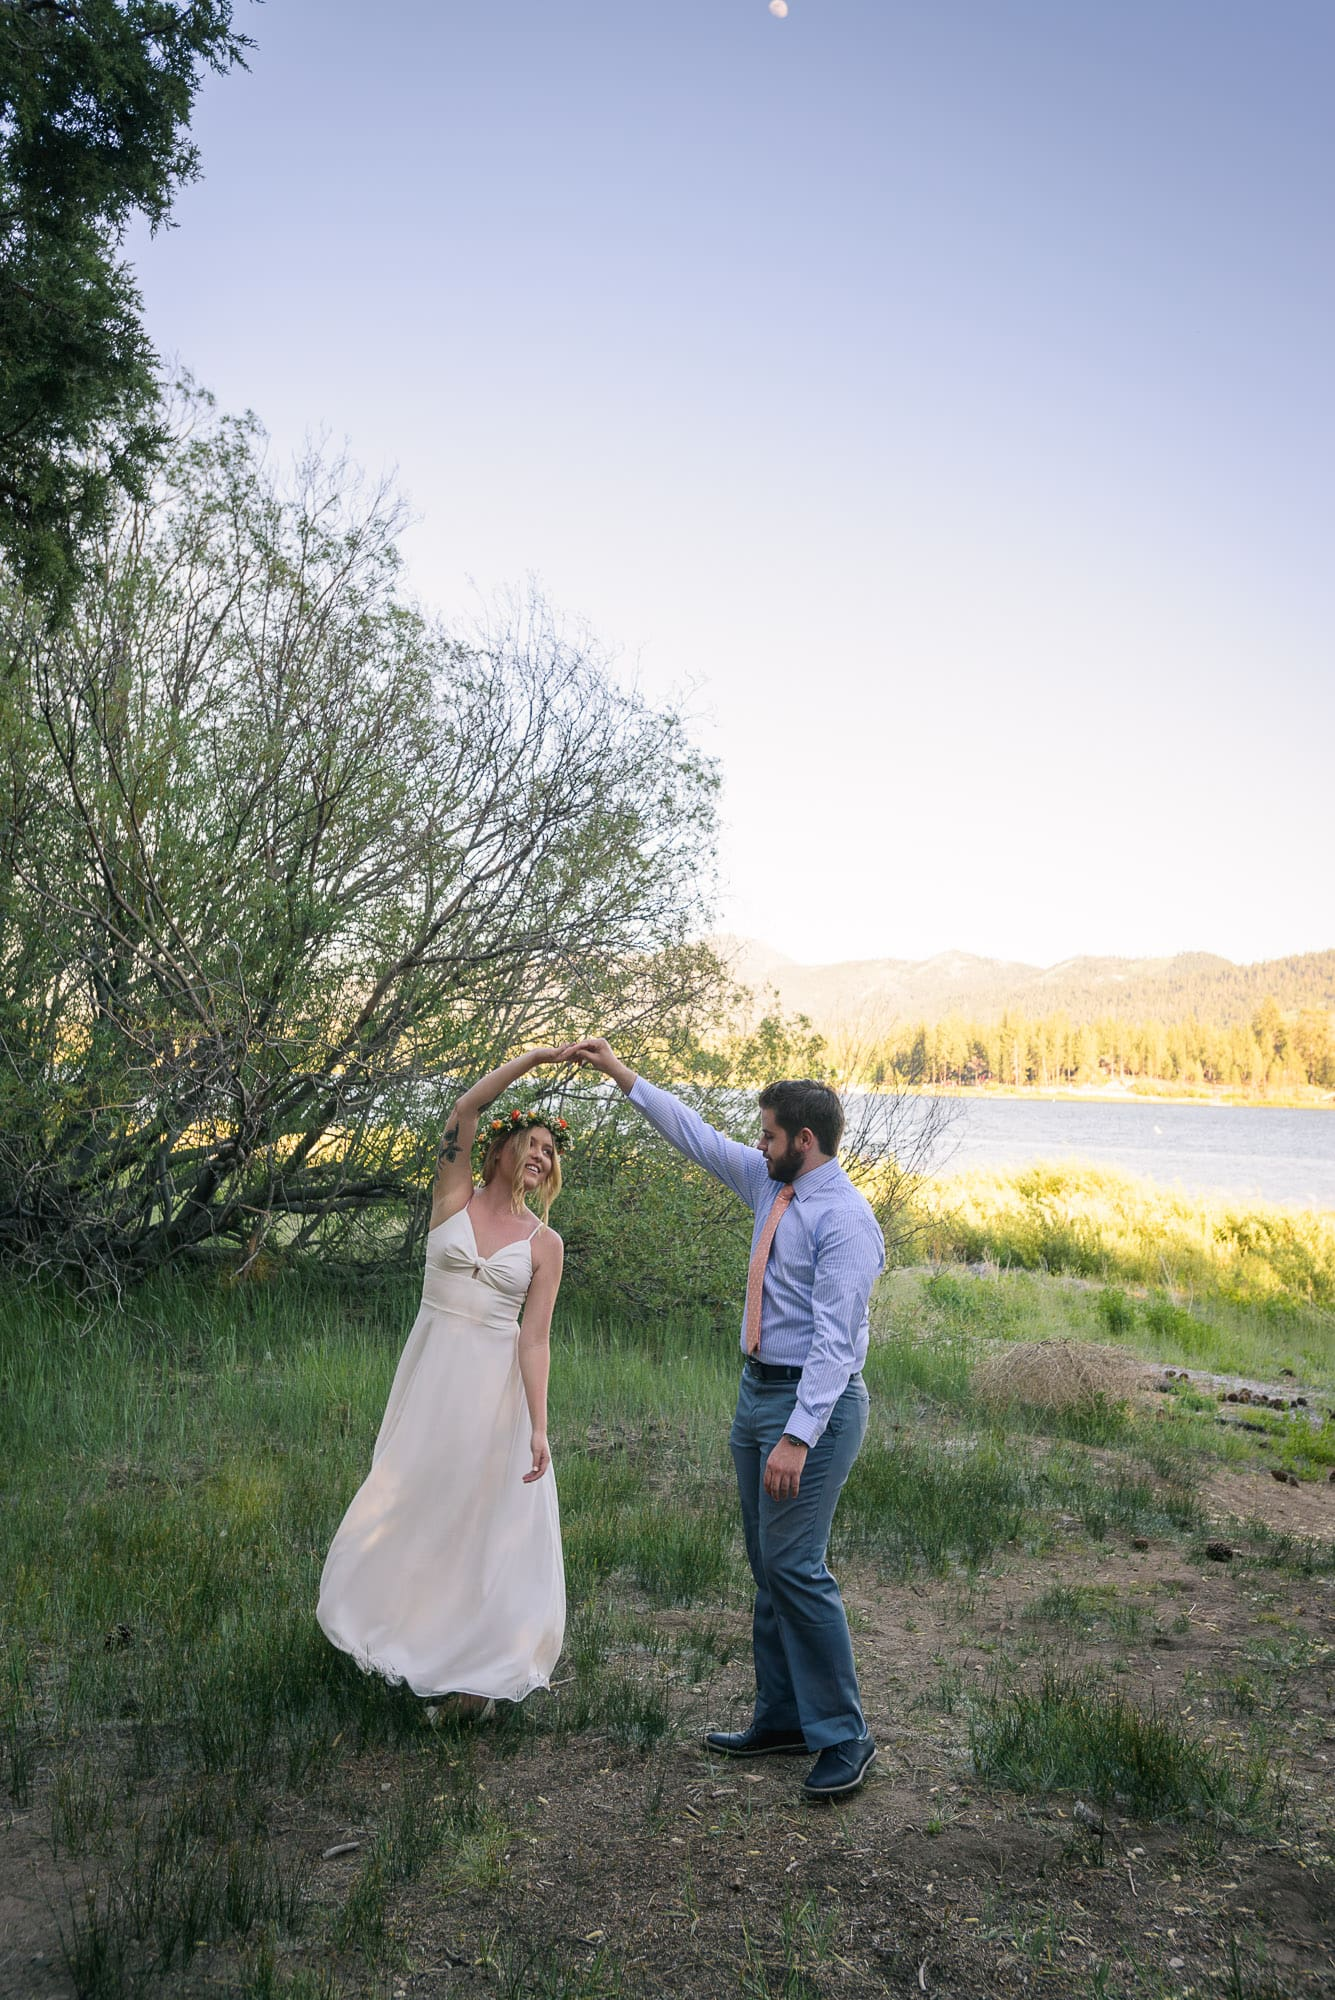 010_Alan_and_Heidi_Kensey_Josh_Big_Bear_Elopement